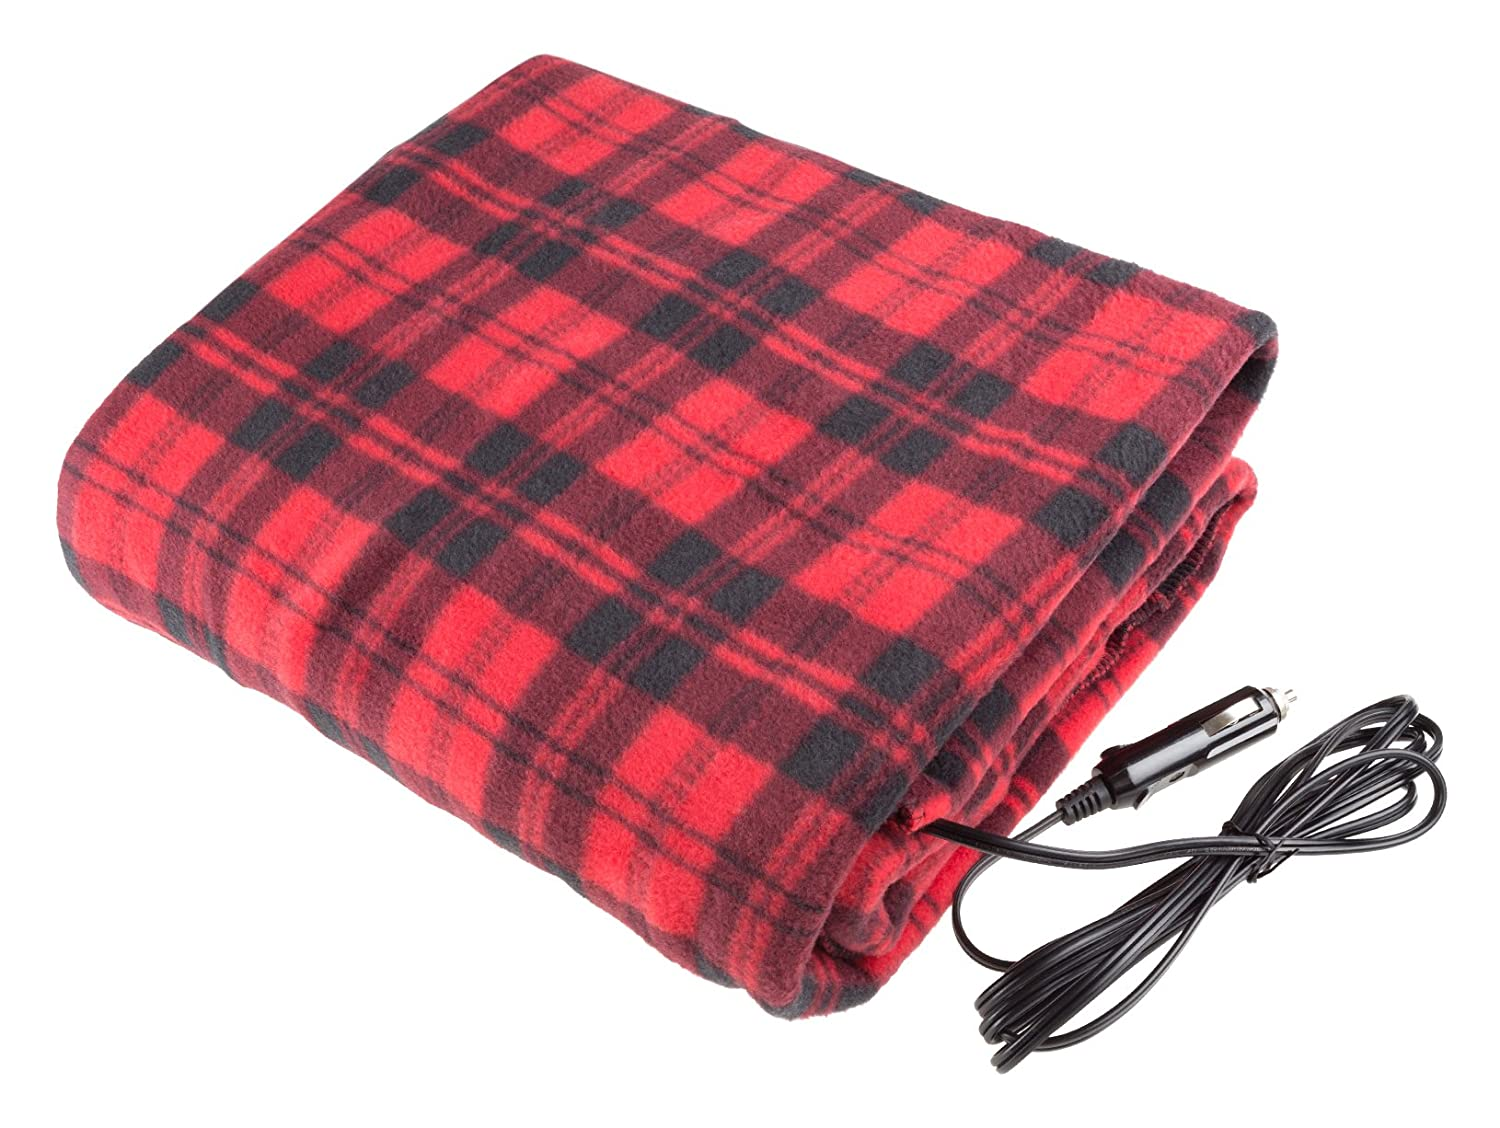 Stalwart Electric Car Blanket-Heated 12 Volt Fleece Travel Throw Image